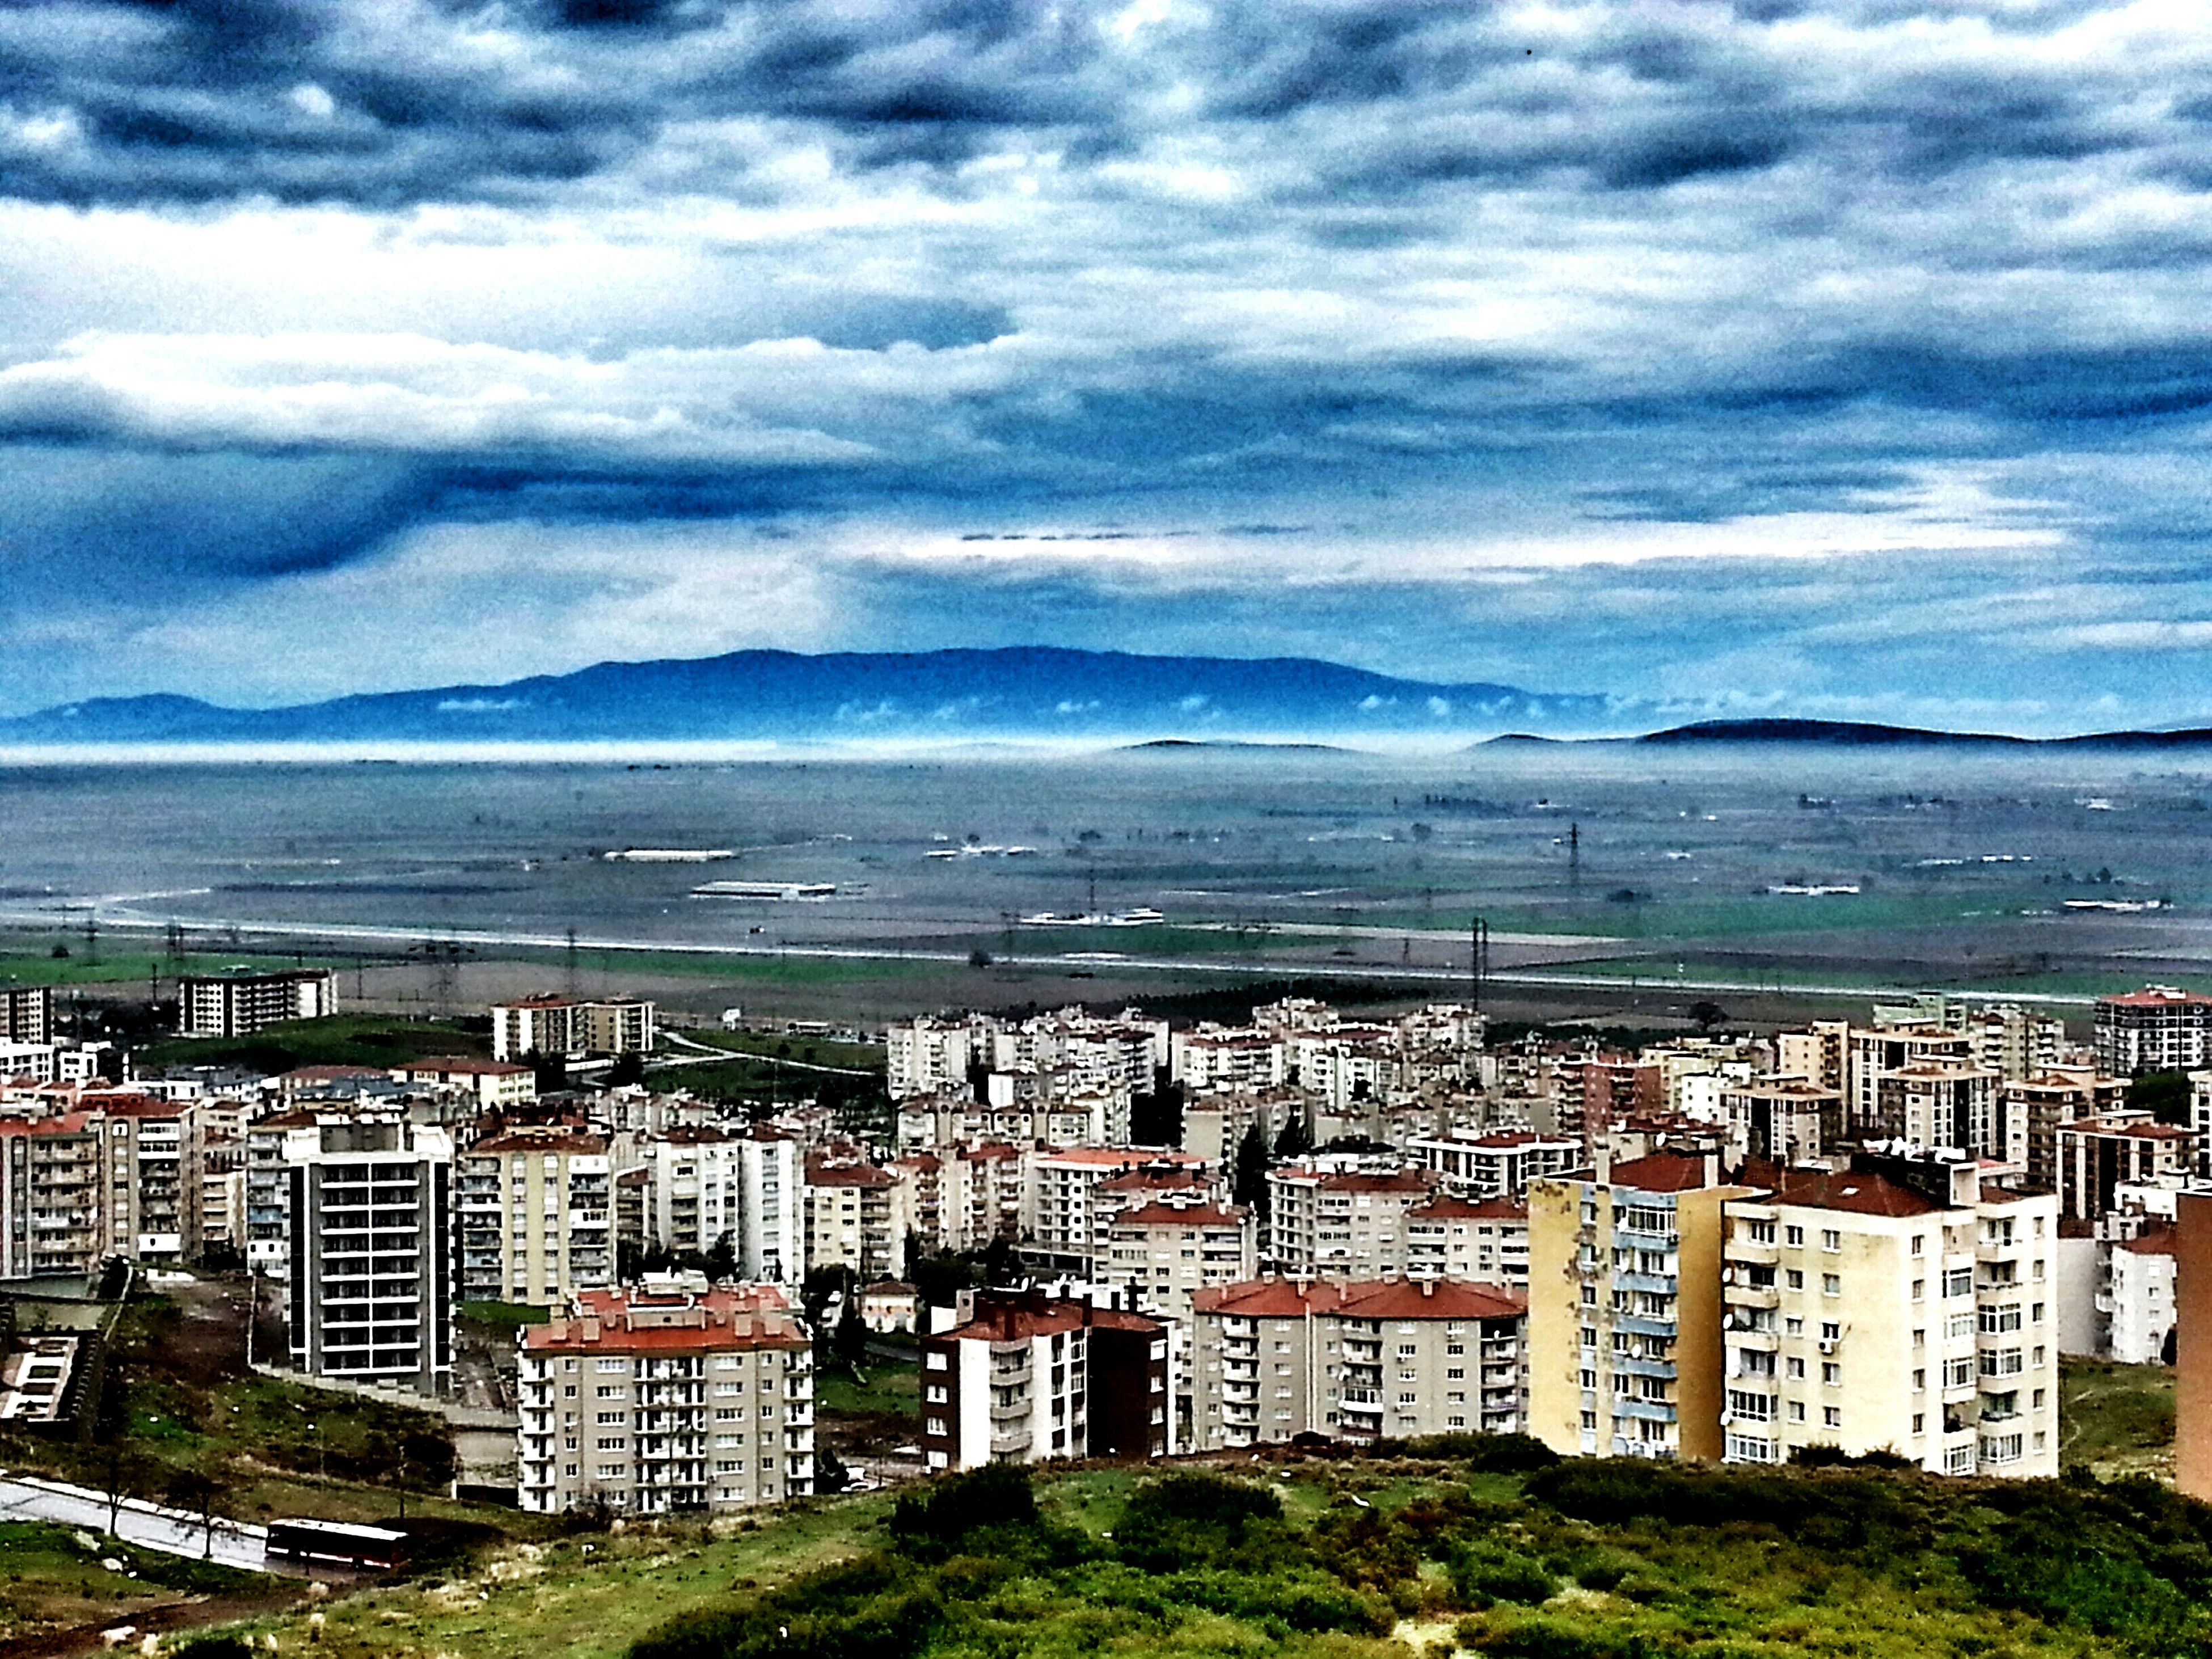 sky, cloud - sky, building exterior, architecture, cloudy, city, built structure, cityscape, water, sea, cloud, high angle view, residential district, residential building, scenics, weather, crowded, nature, beach, outdoors